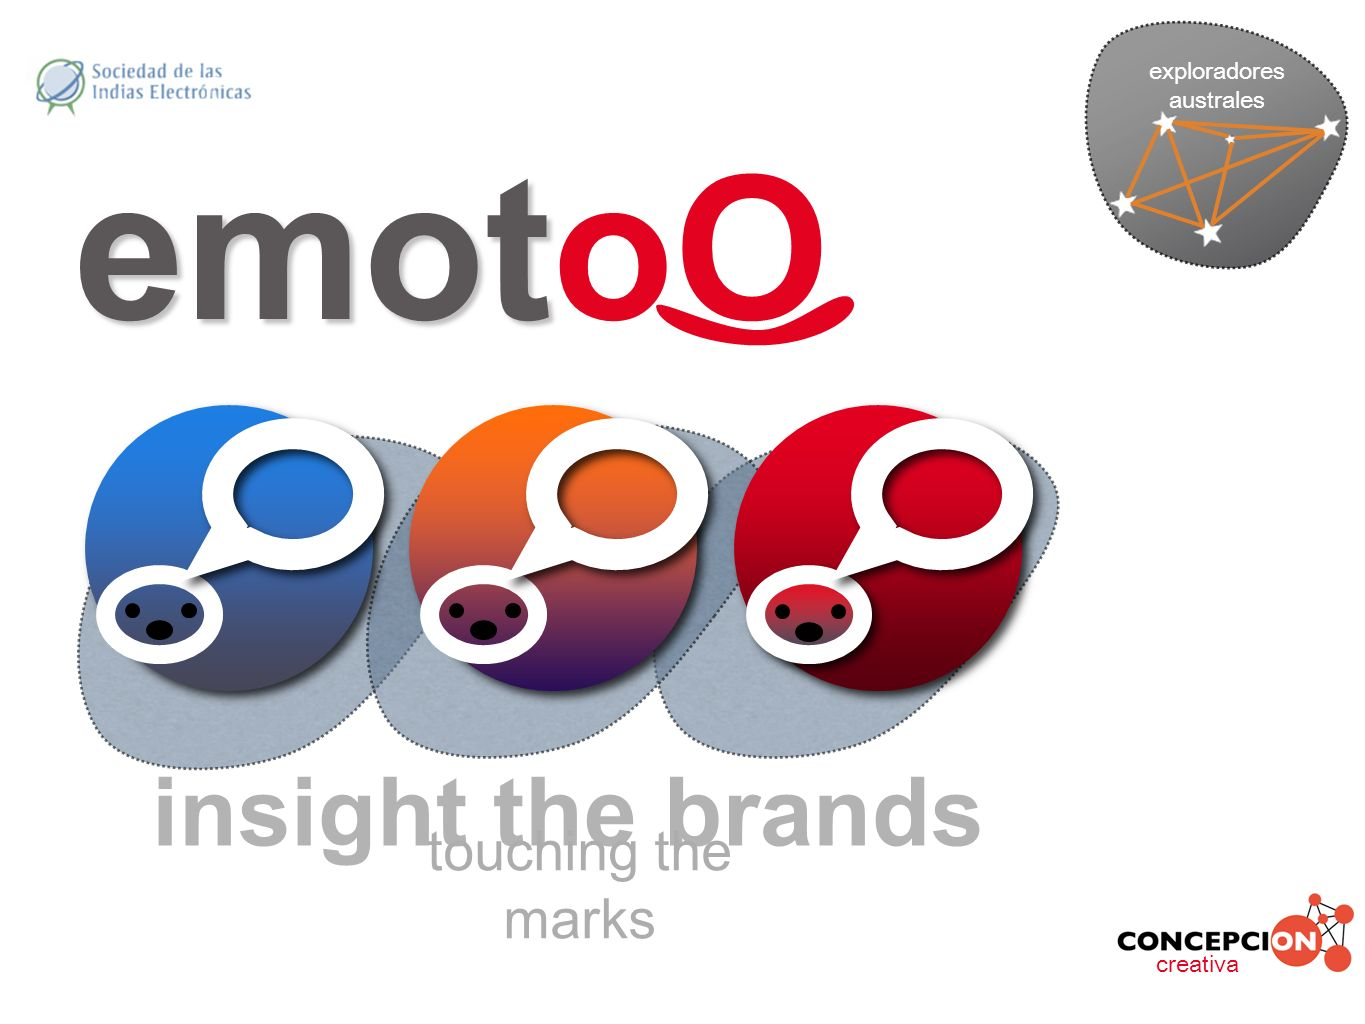 emotoO insight the brands touching the marks exploradores australes